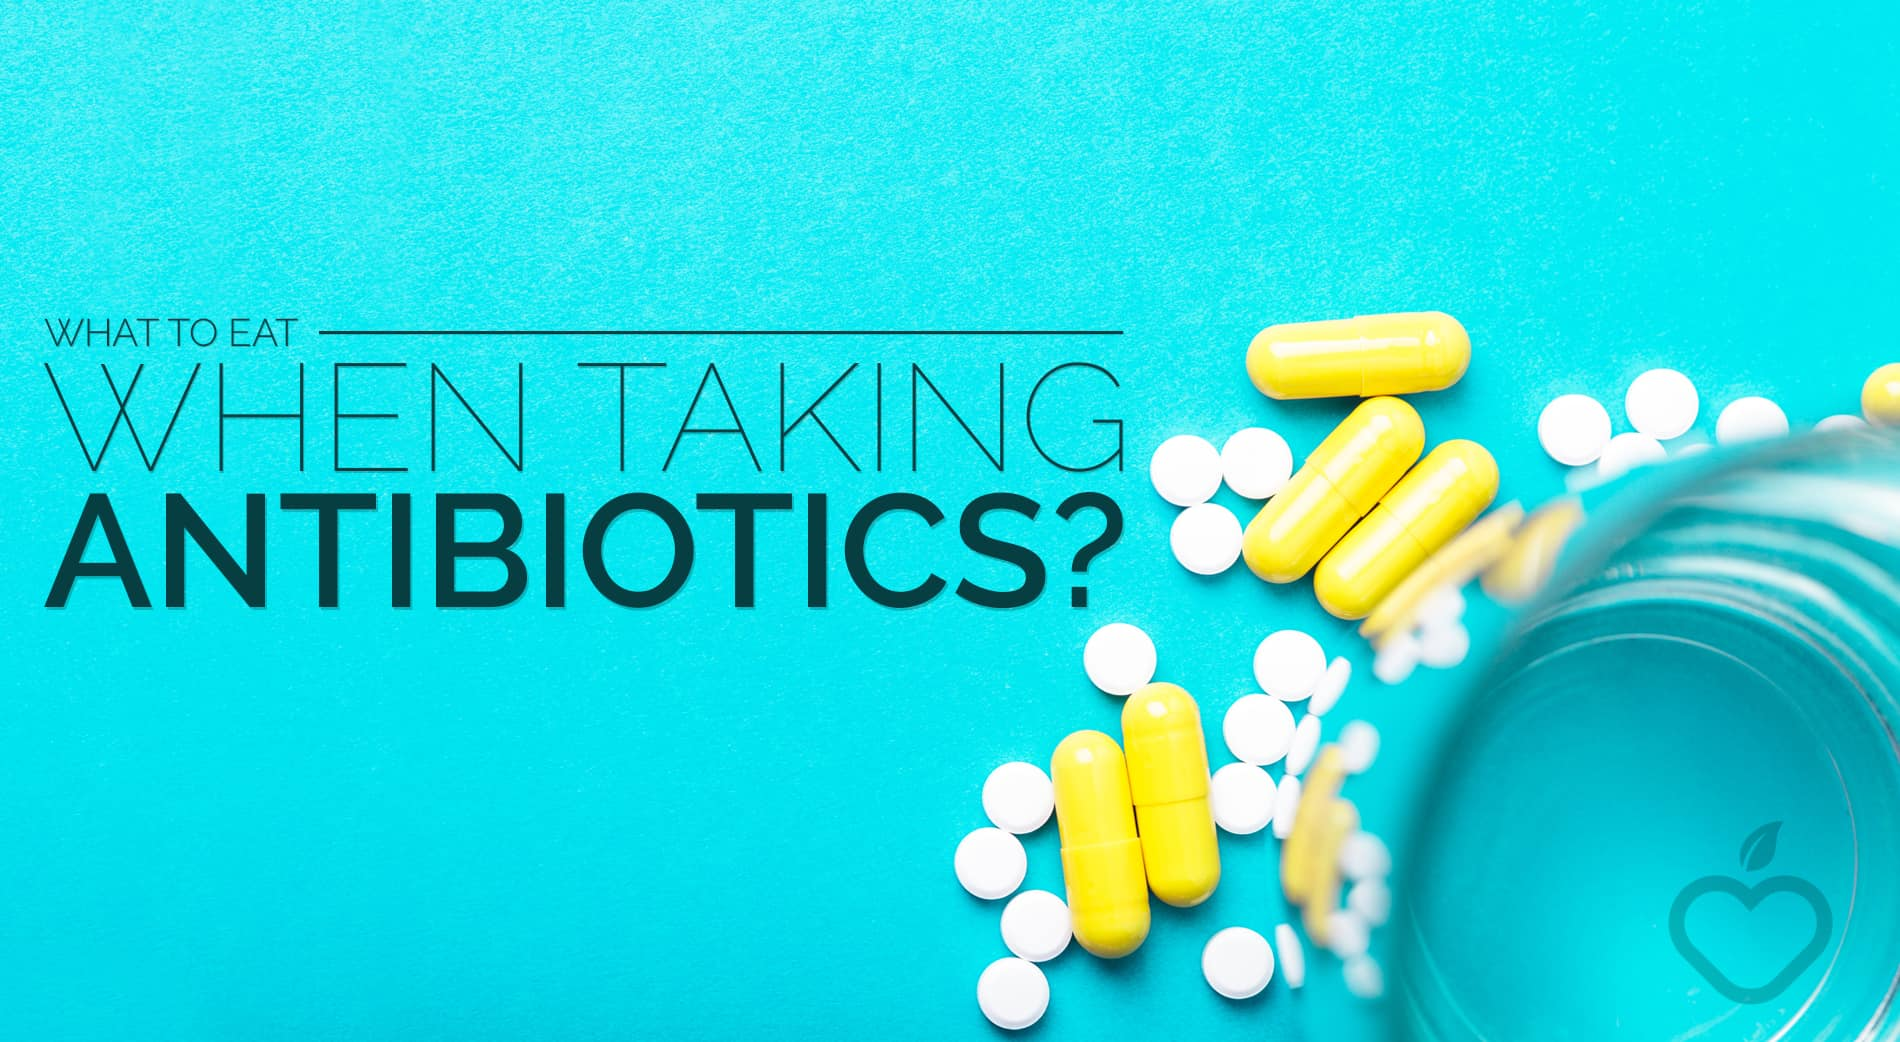 Antibiotics Image Design 1 - What to Eat When Taking Antibiotic